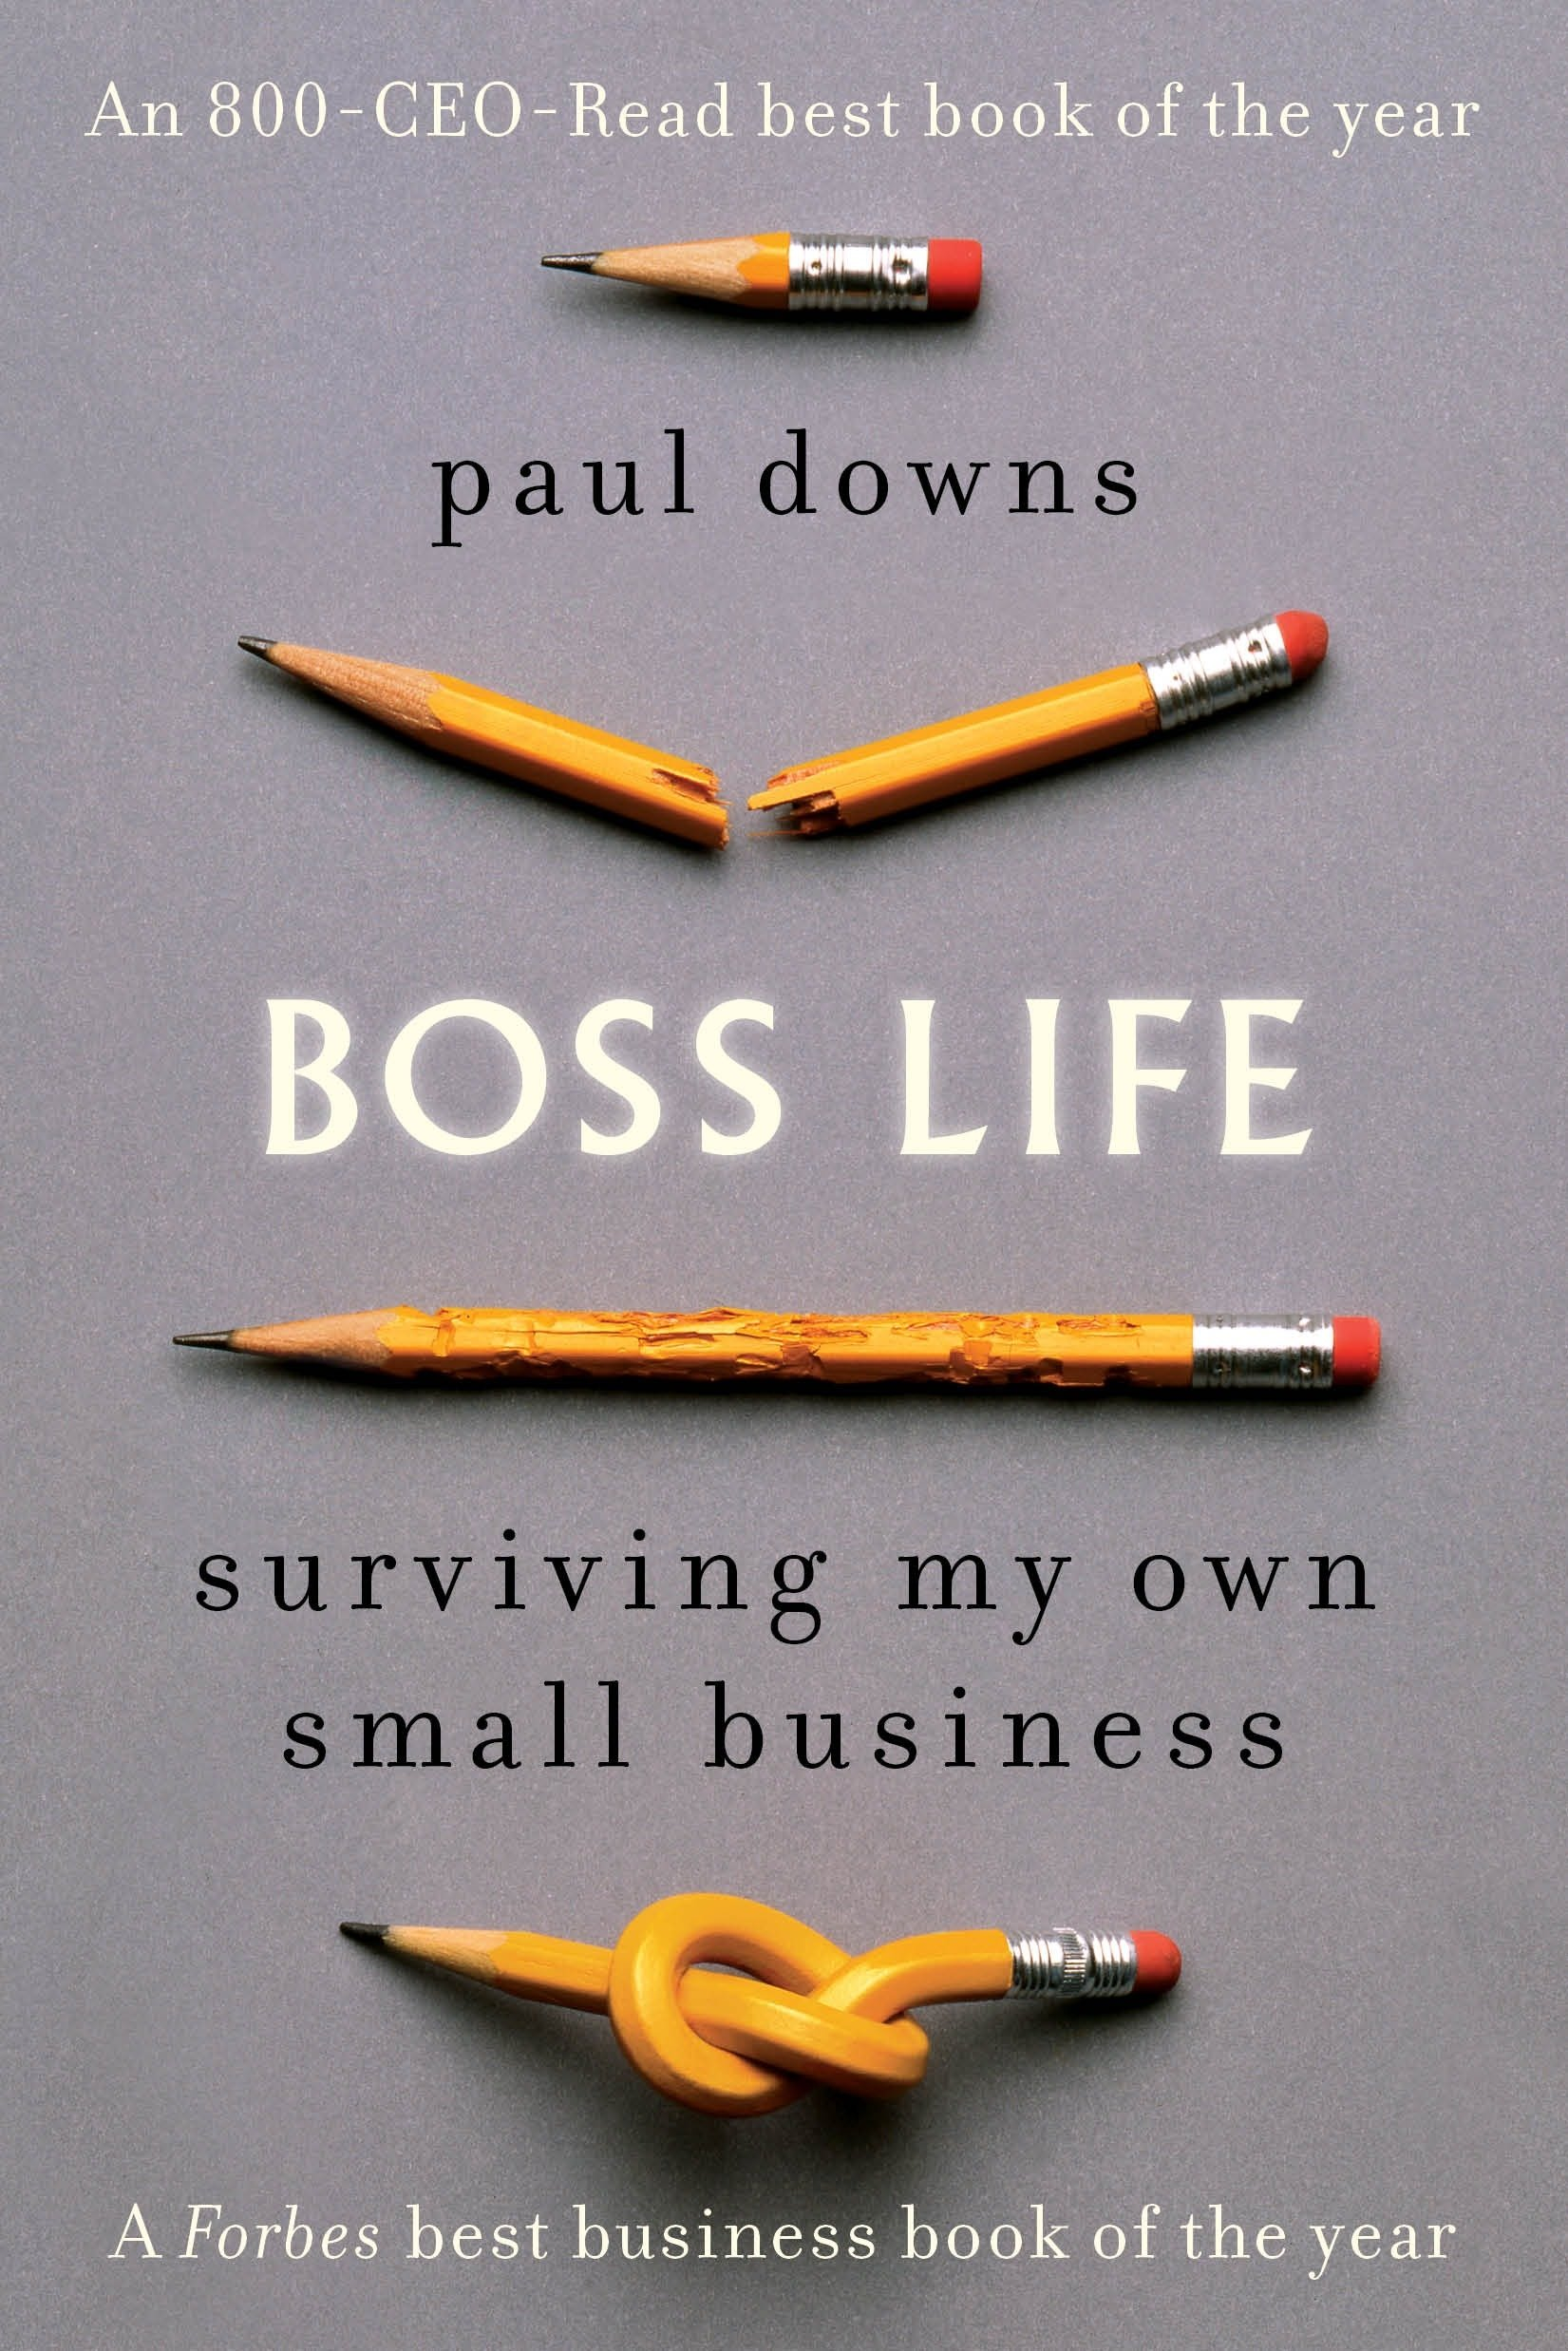 Boss Life Surviving Small Business product image